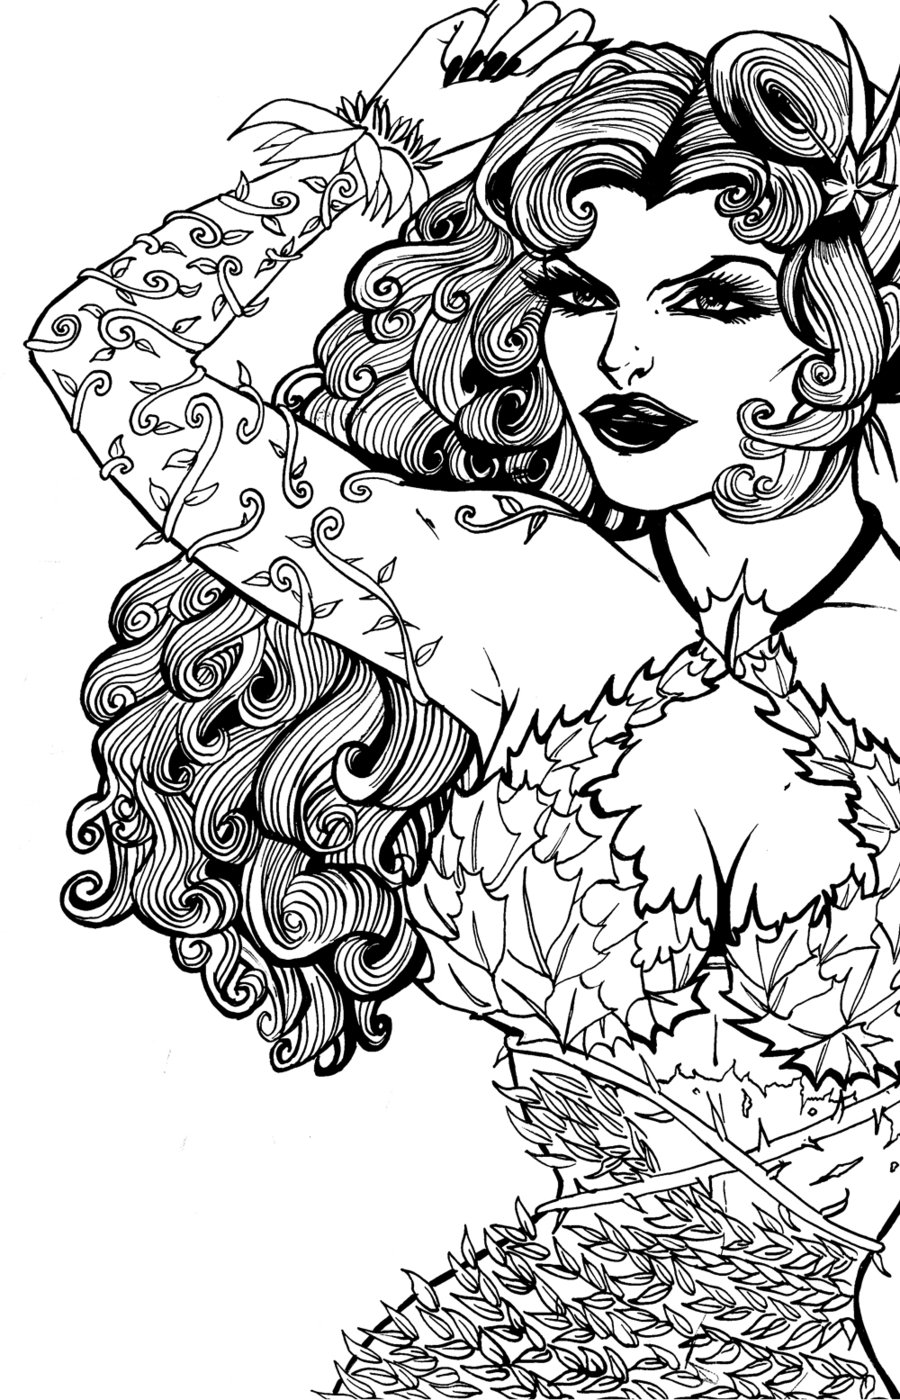 poison ivy coloring pages to download and print for free